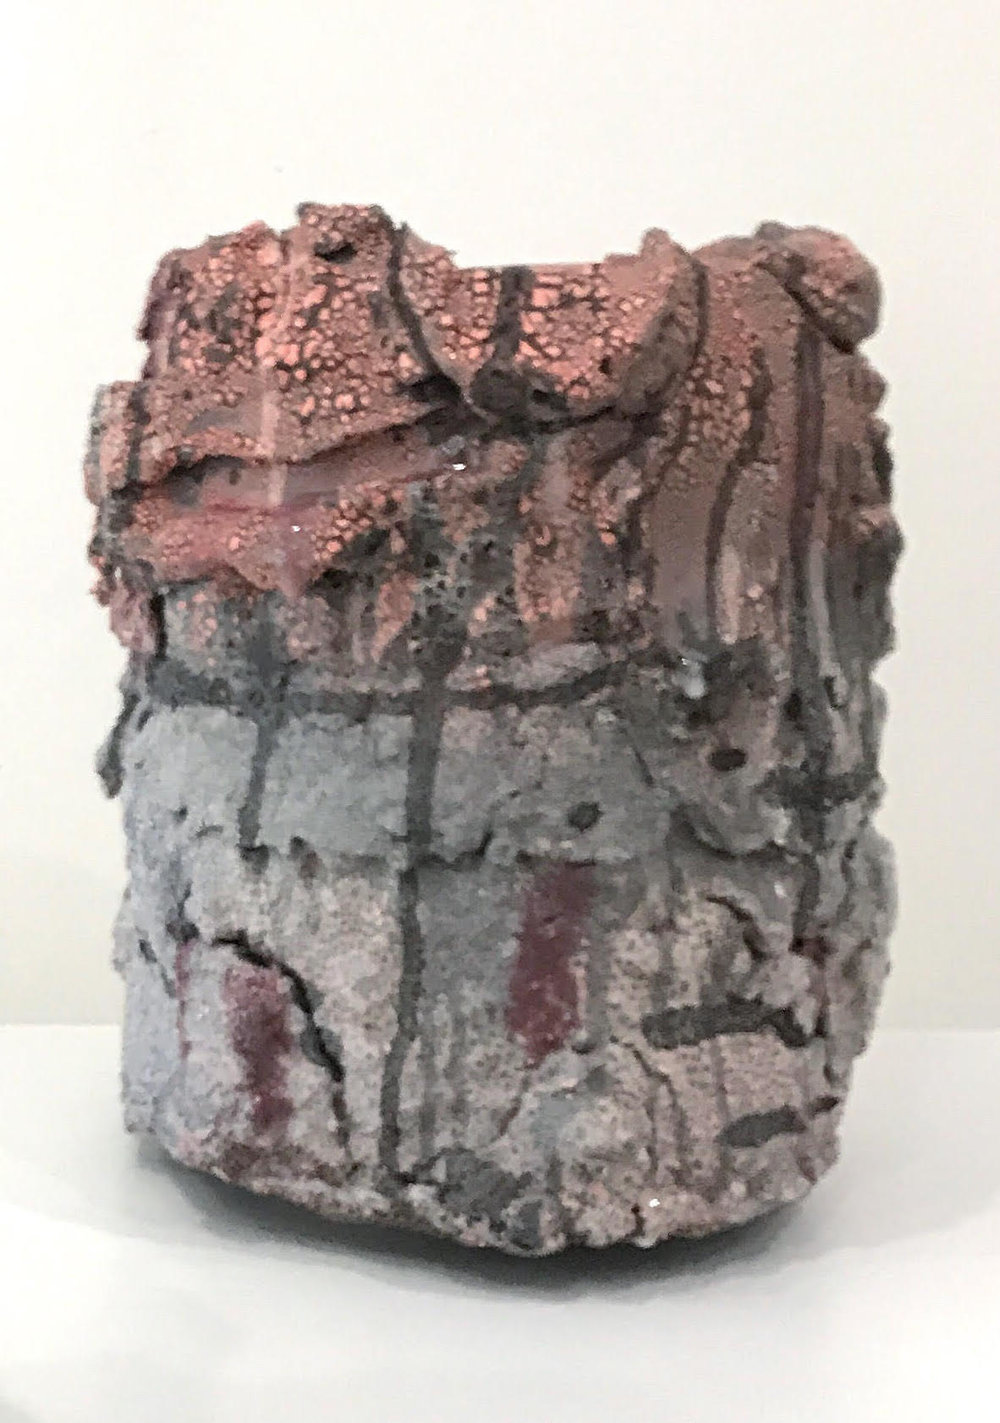 Brian Rochefort  Vessel 235 , 2016 ceramic, glaze 16 x 13 x 13 in.